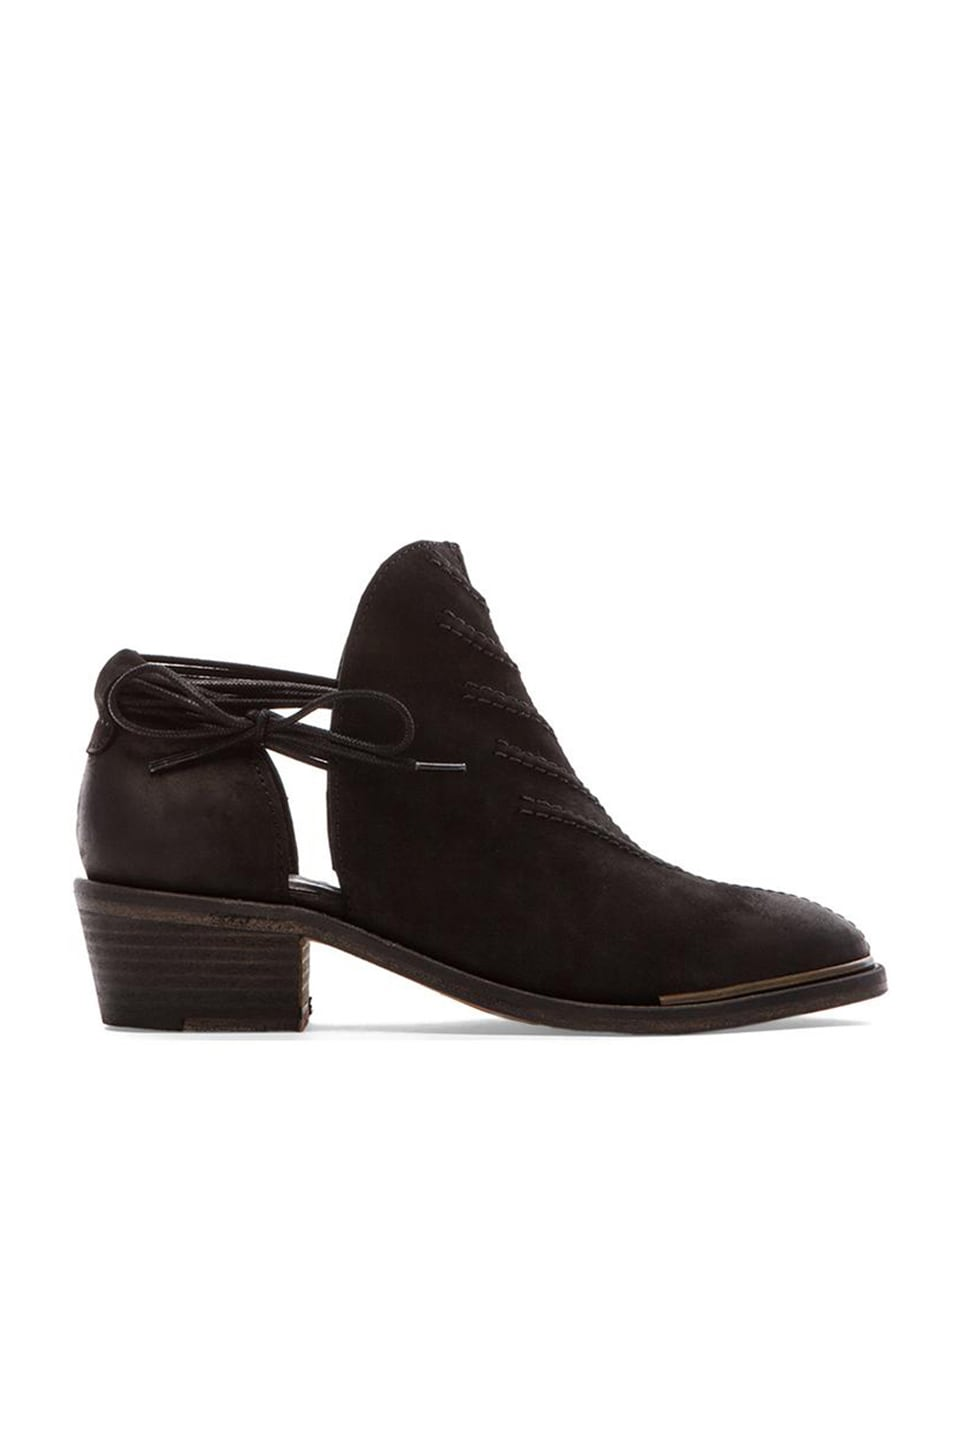 Free People Southern Cross Shoeboot in Black